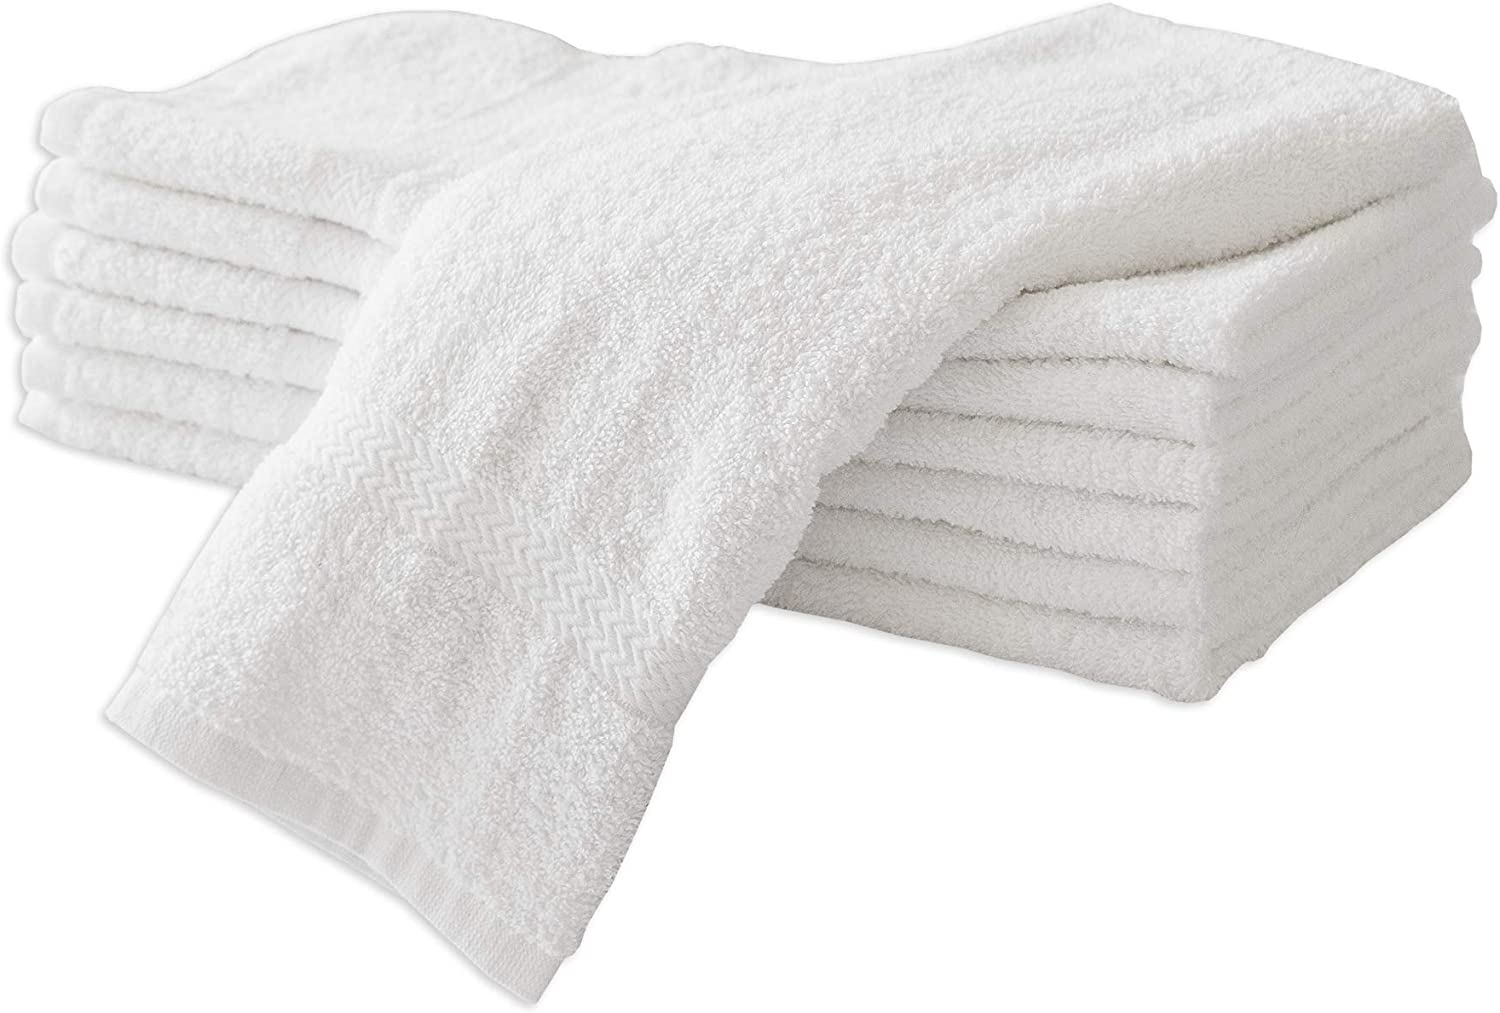 6 PACK HOTEL HAND TOWELS BLENDED EGYPTIAN COTTON 16x27